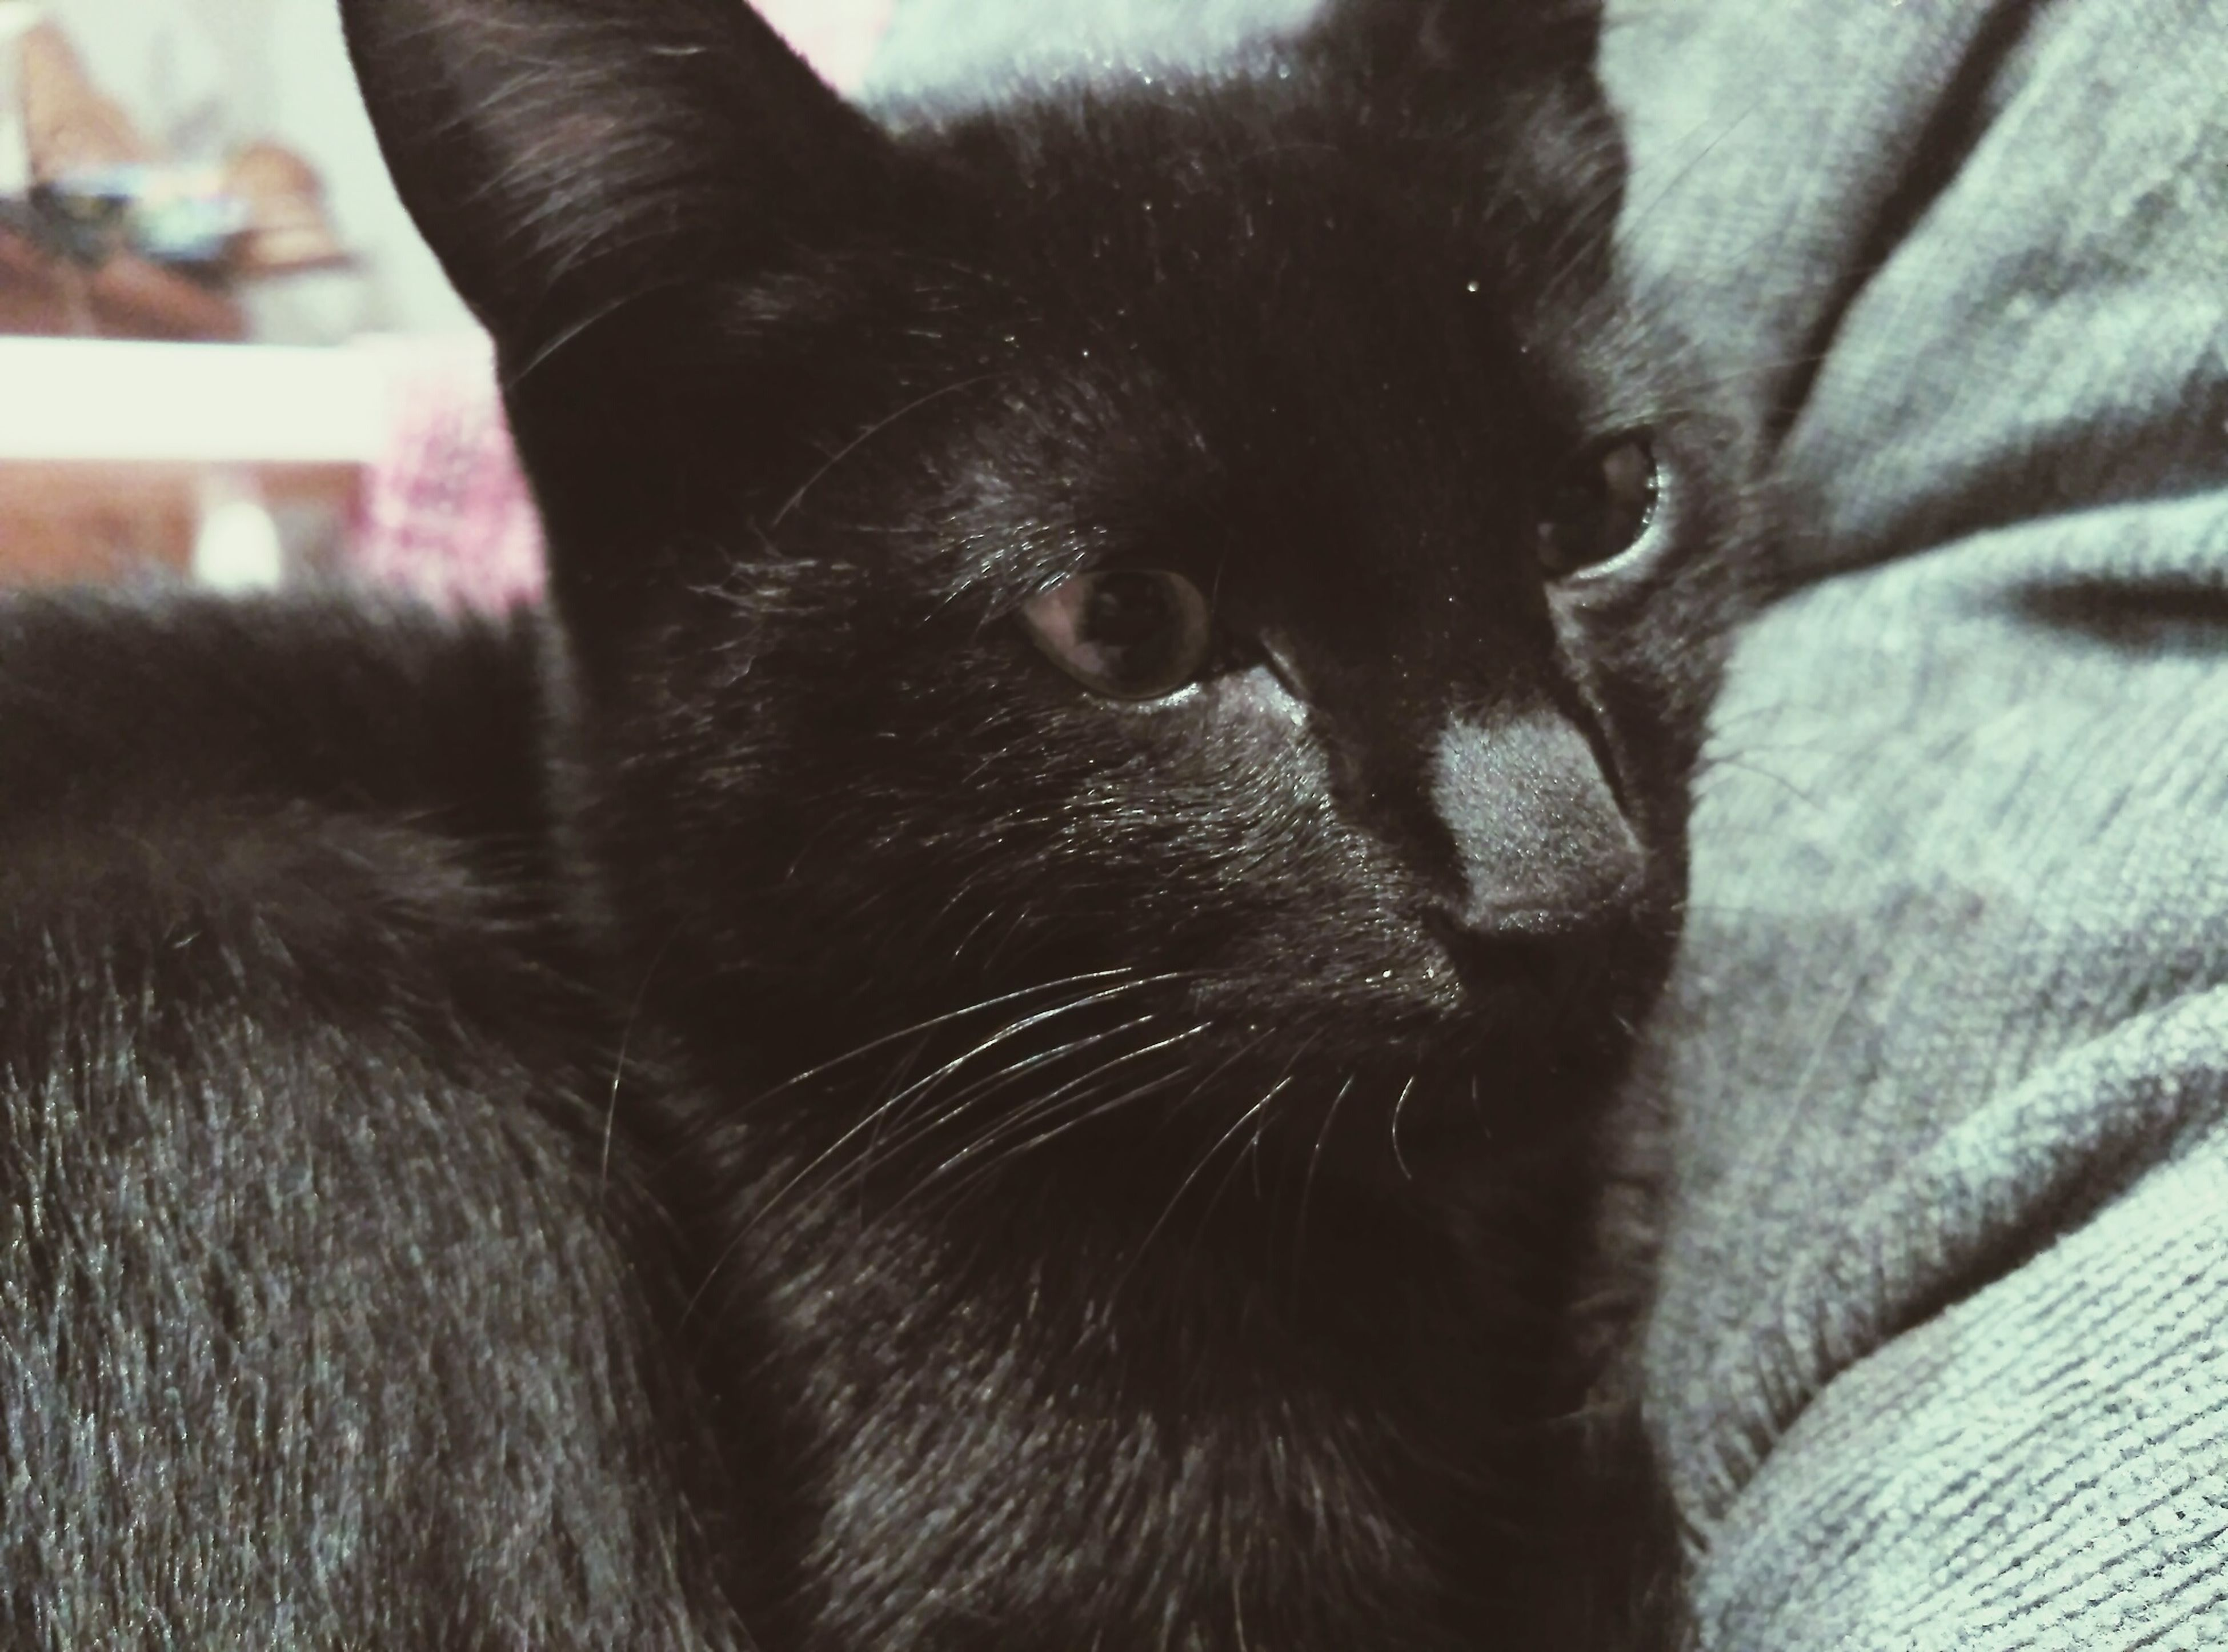 pets, domestic animals, animal themes, one animal, mammal, indoors, domestic cat, cat, feline, close-up, relaxation, whisker, black color, animal head, resting, bed, animal body part, home interior, lying down, no people